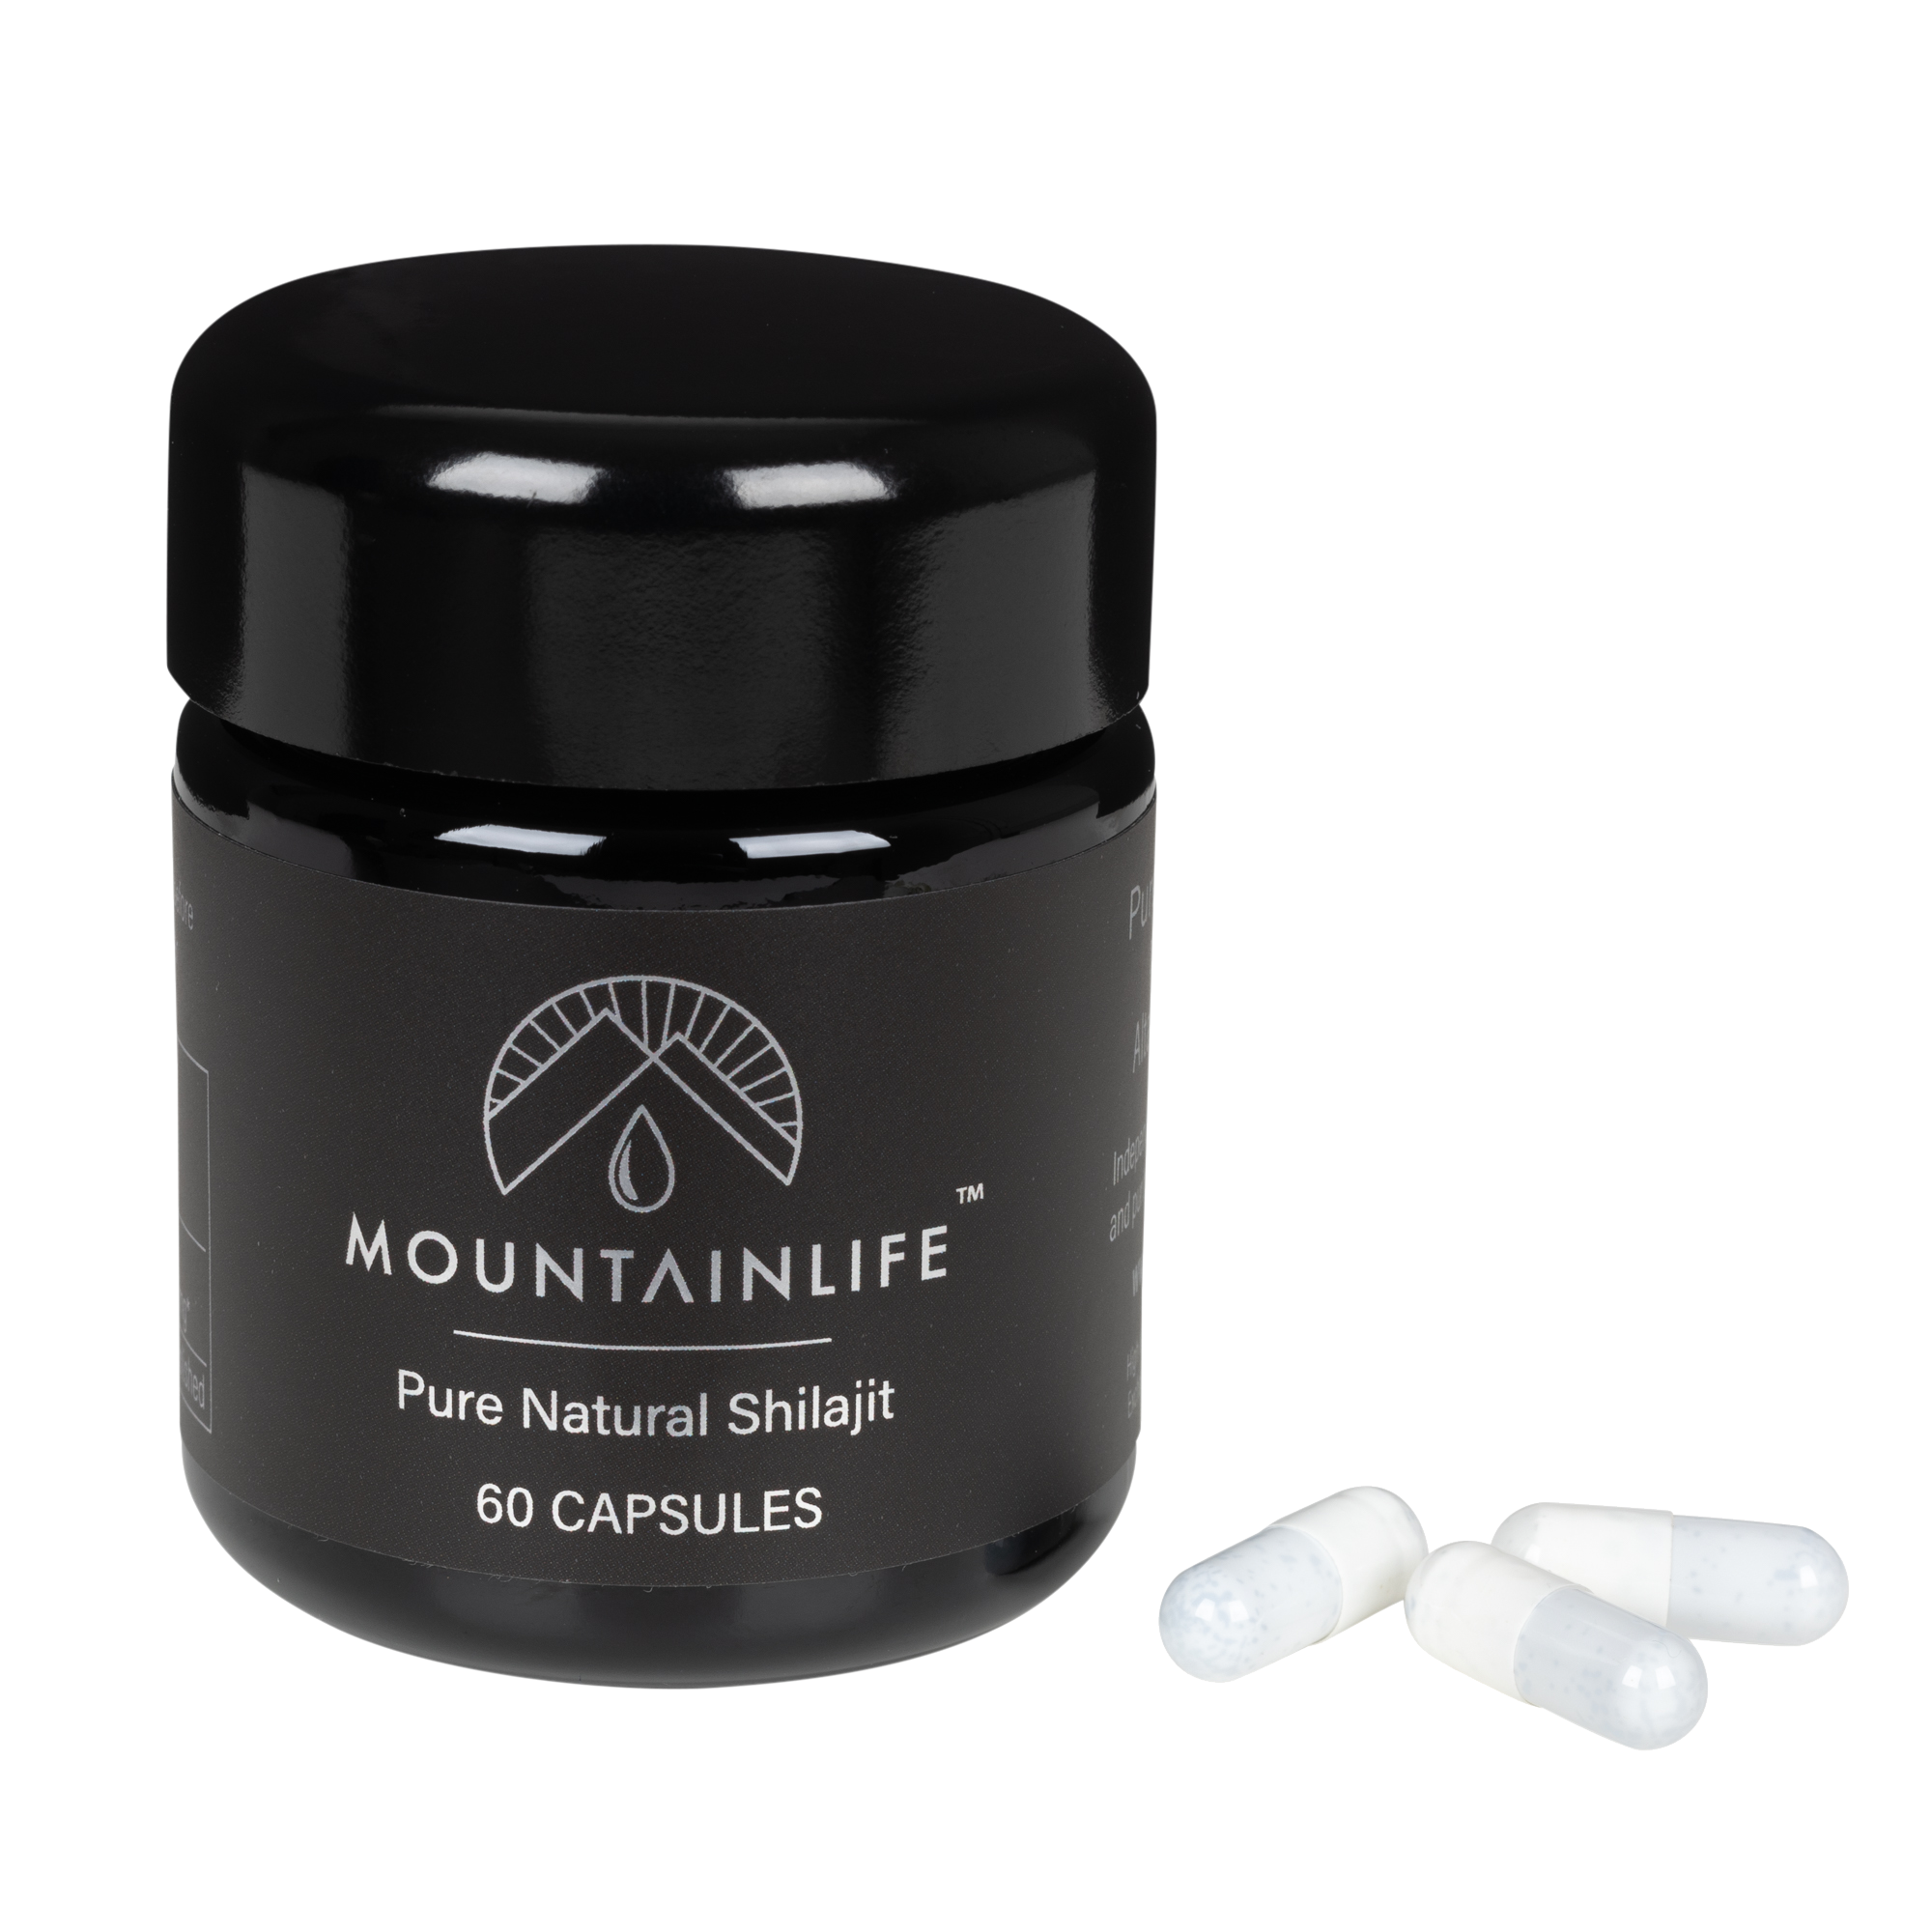 Mountainlife Natural Shilajit 60 capsules in UV glass jar with three capsules adjacent